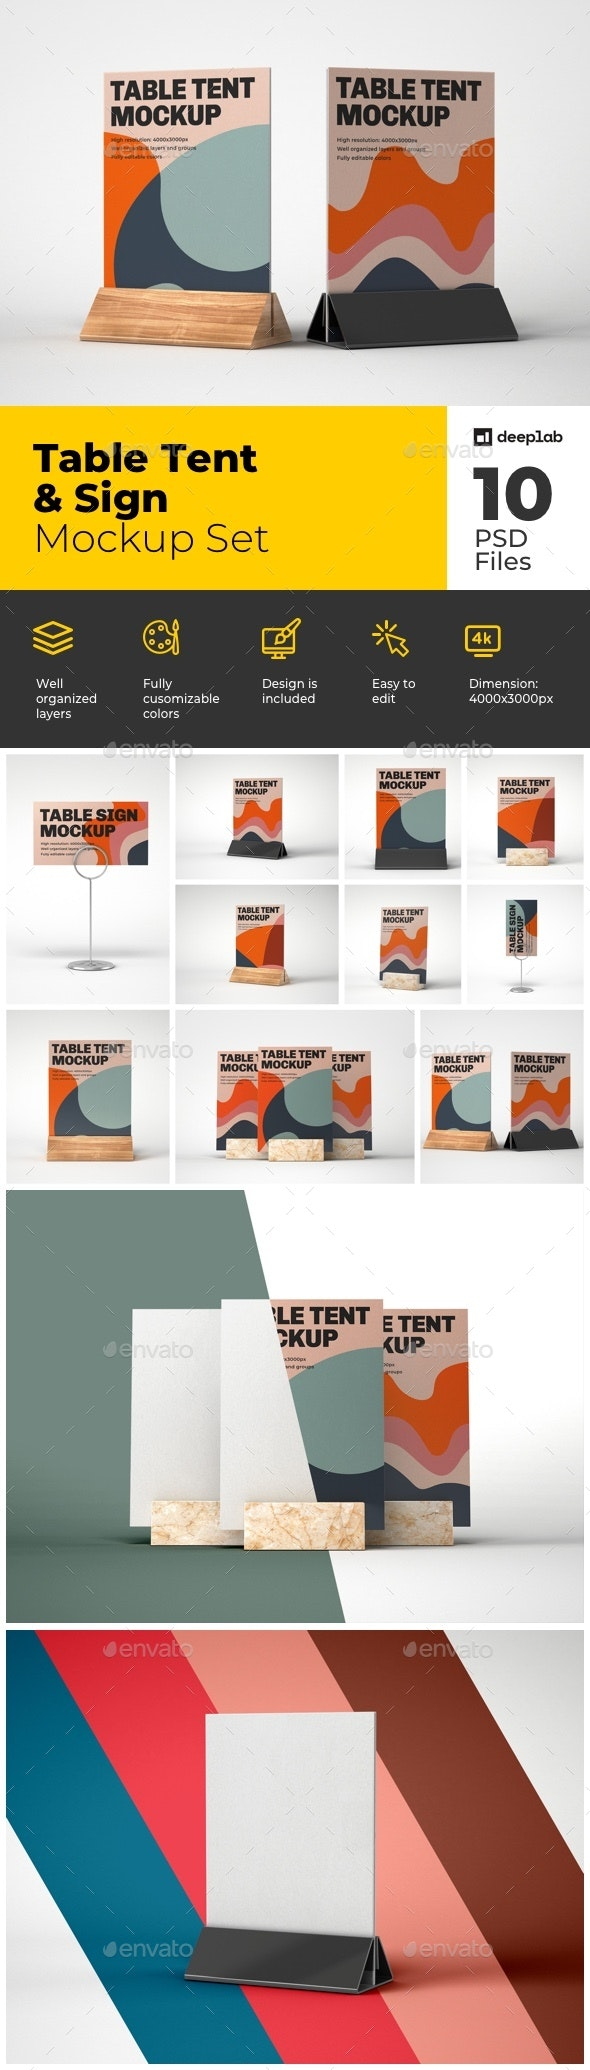 Table Tent and Sign Mockup Set - Product Mock-Ups Graphics